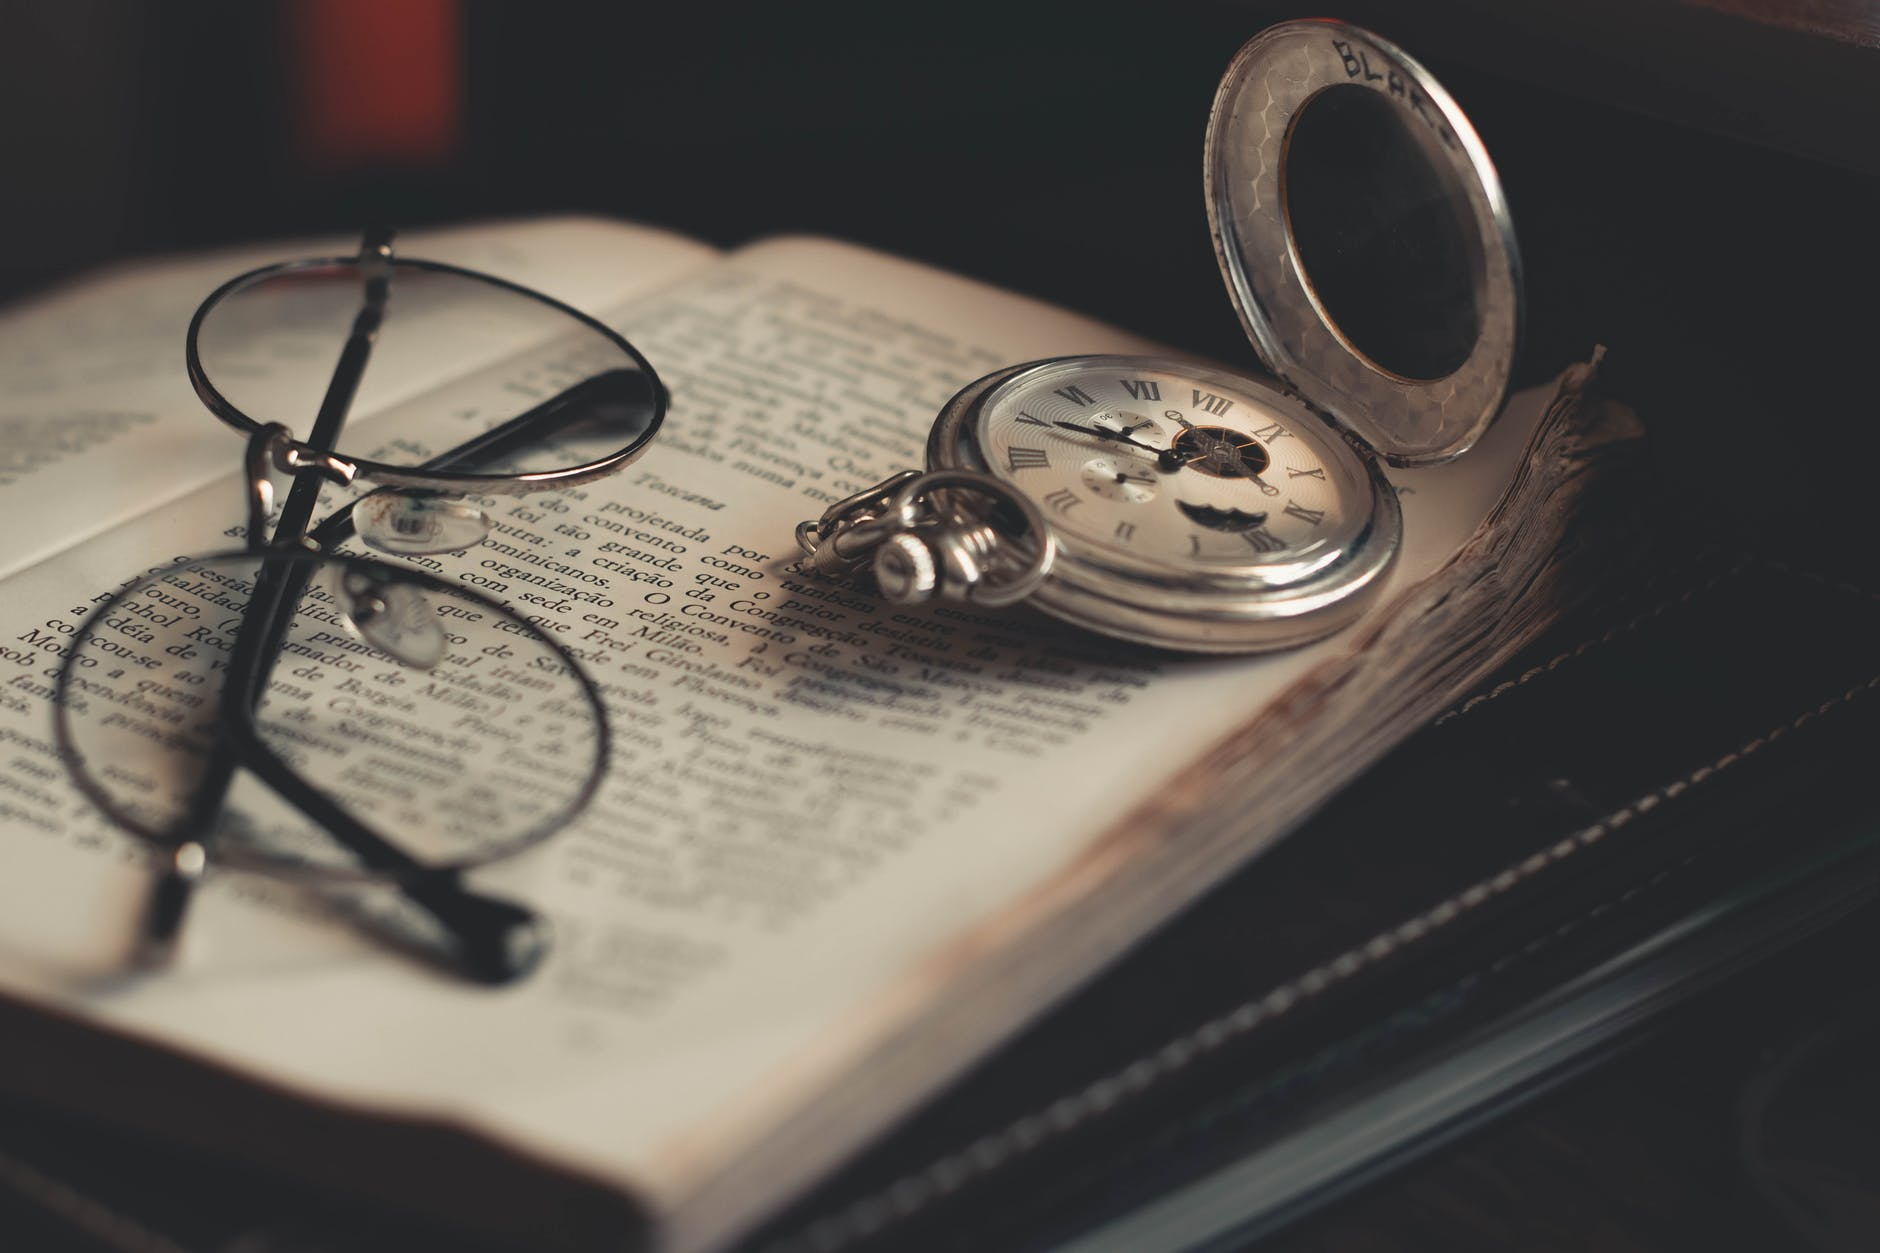 round silver colored pocket watch and eyeglasses on opened book